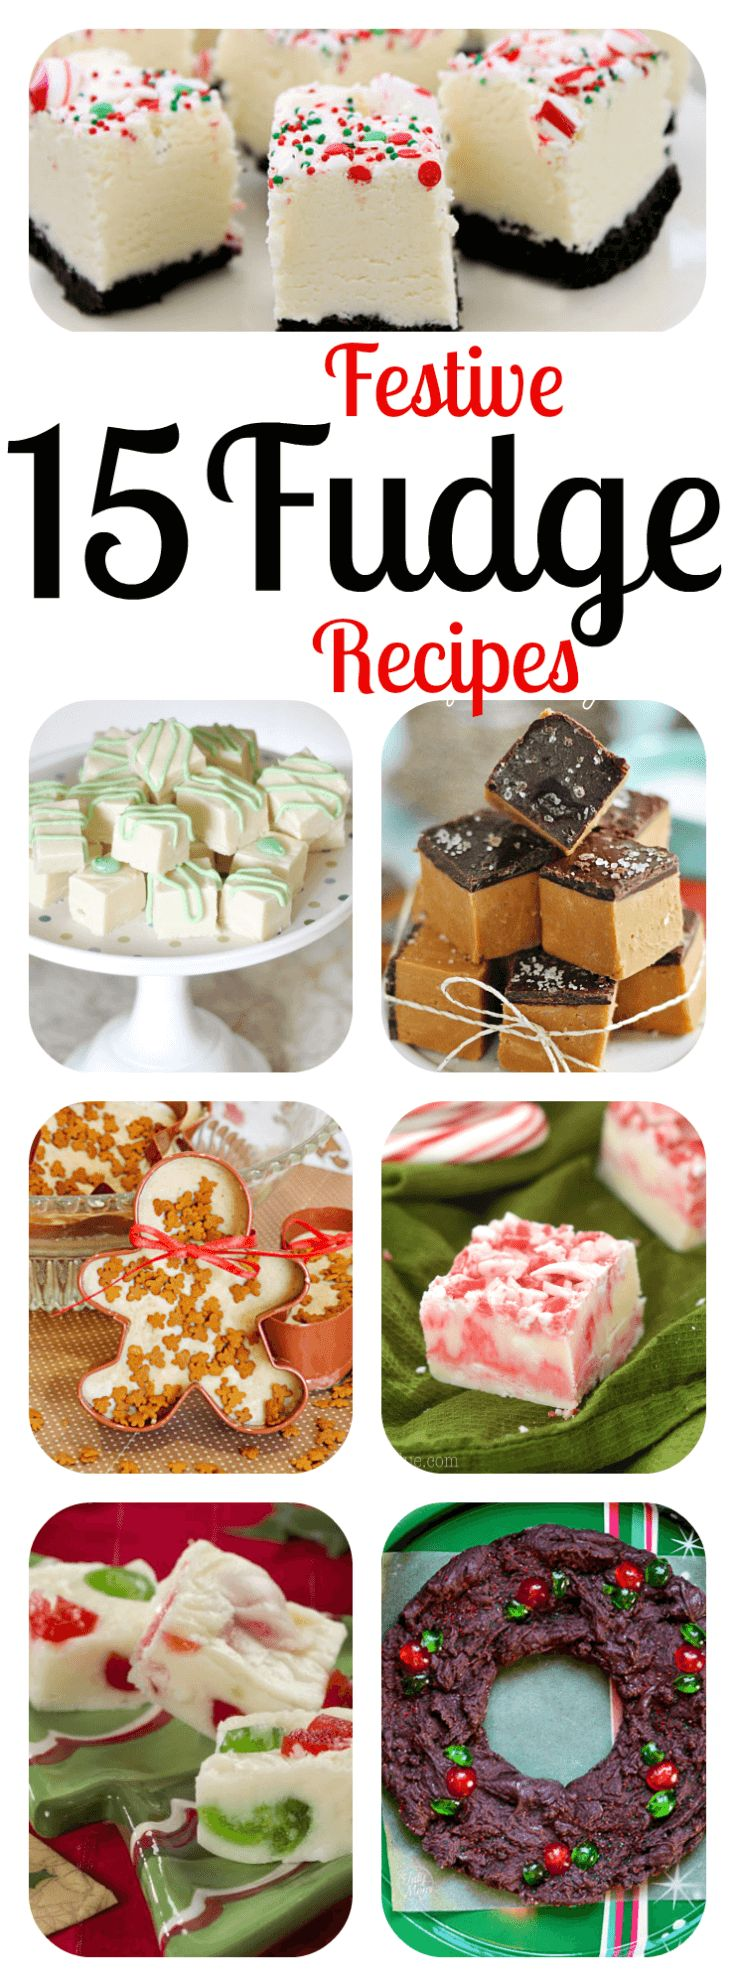 Homemade Christmas Fudge Recipes - the perfect Christmas Gift! The best DIY holiday fudge: Gingerbread, Mint, Candy Cane, Kahlua, Bailey's, Salted Caramel, and more! FIFTEEN 15 RECIPES